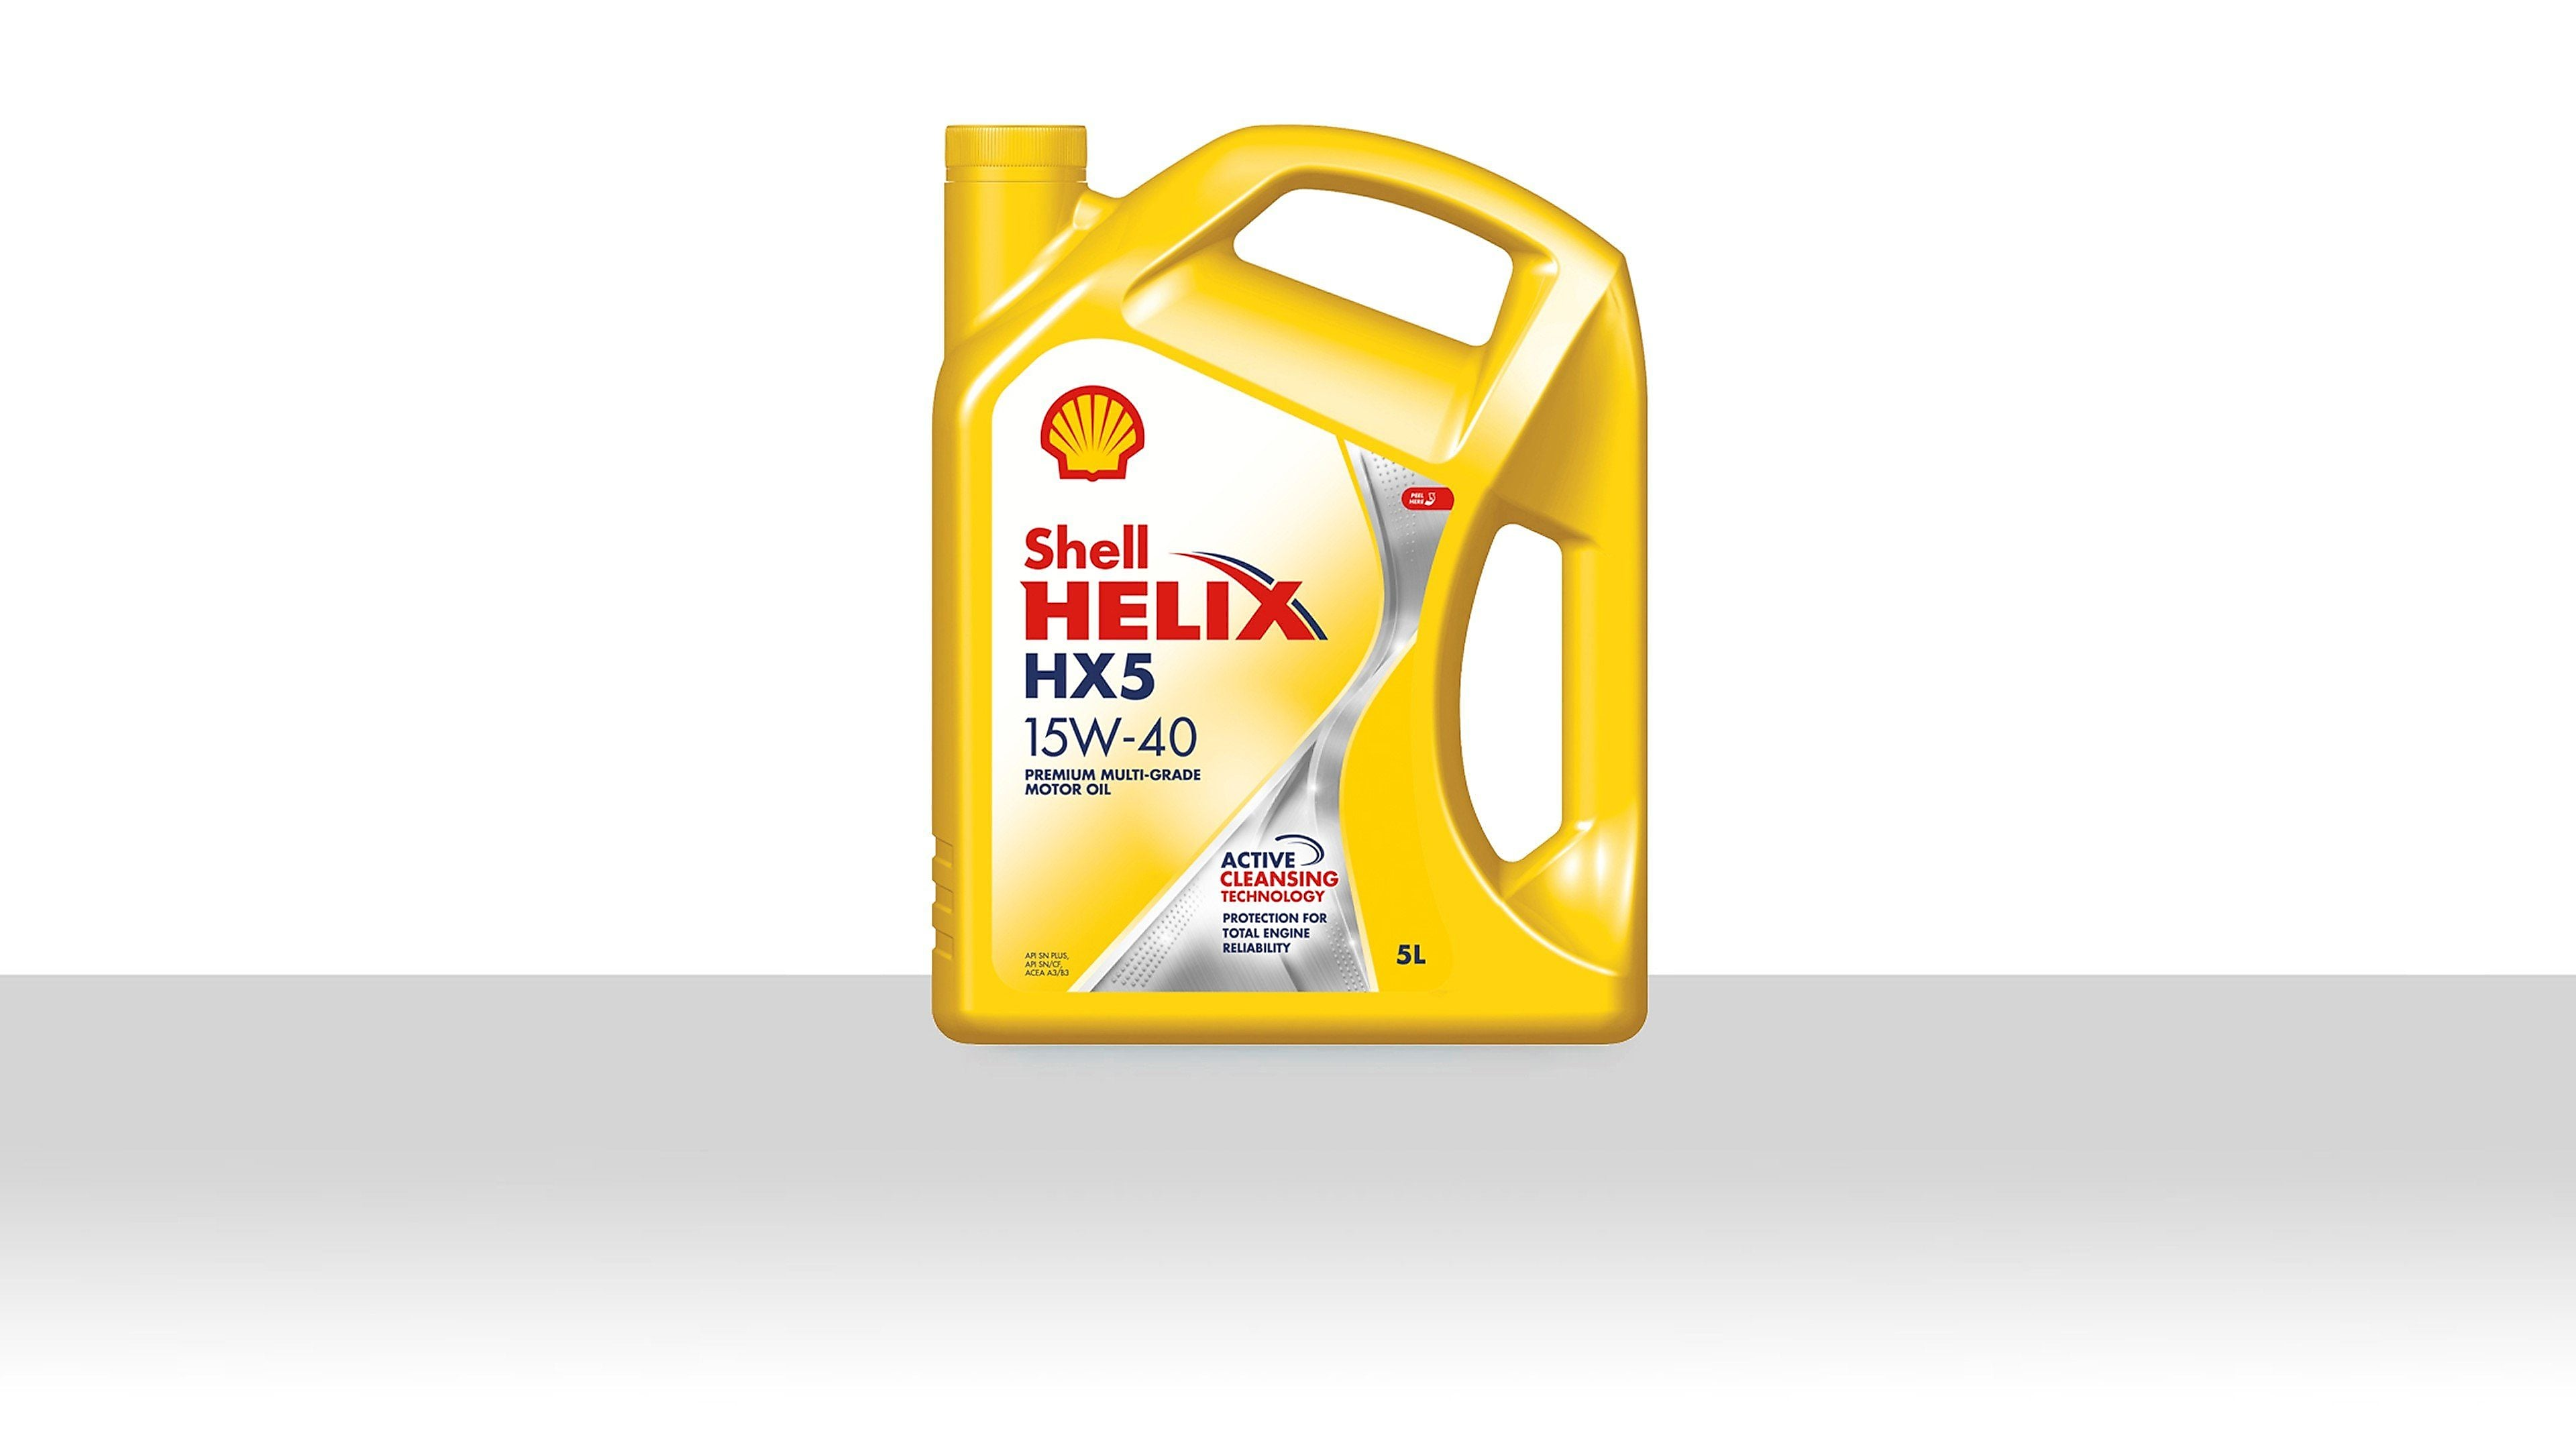 Shell Helix Mineral Motor Oils